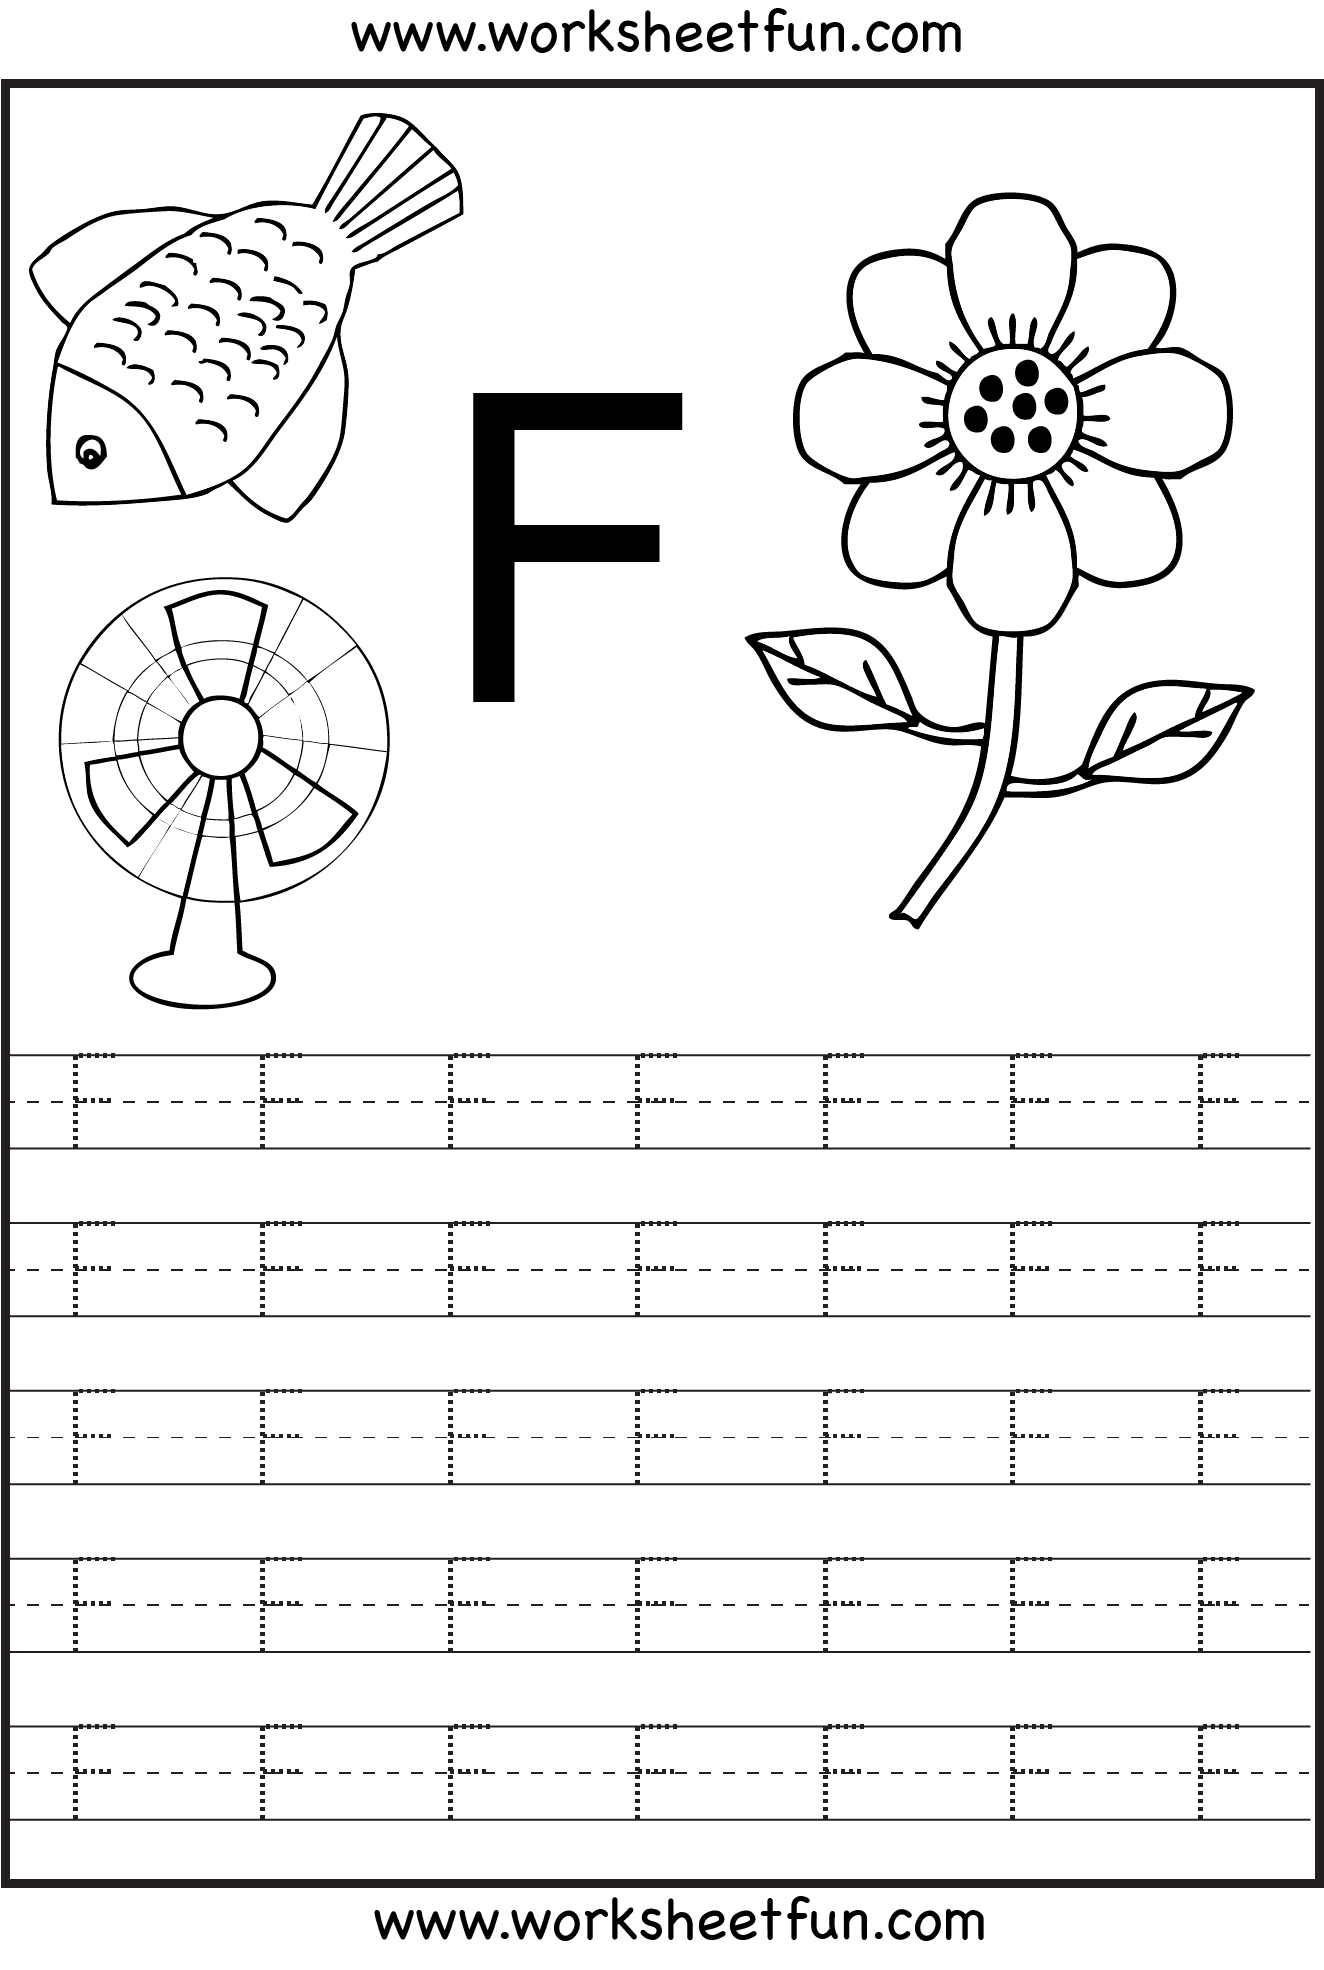 letter f worksheets – Letter F Worksheets for Kindergarten